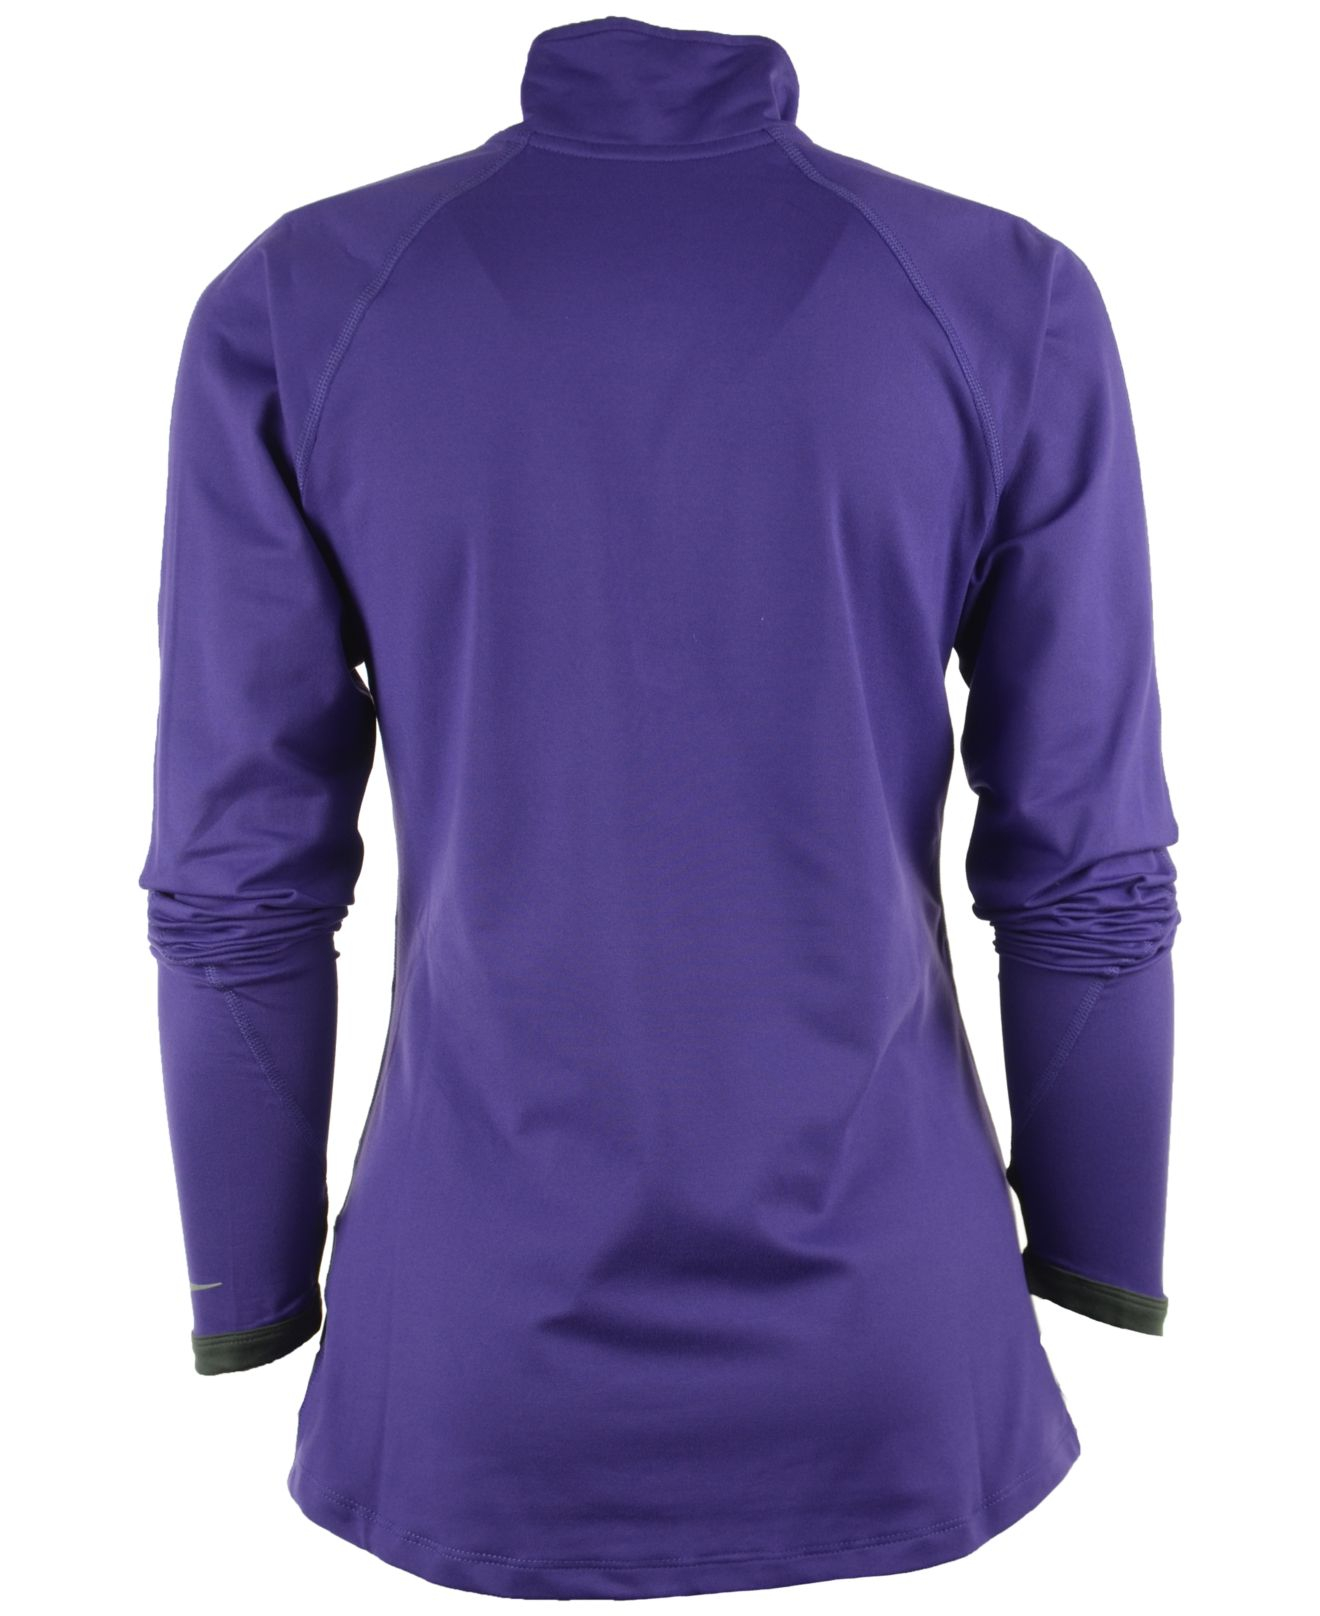 8ad76e338490 Lyst - Nike Women S Minnesota Vikings Element Half-Zip Pullover in ...